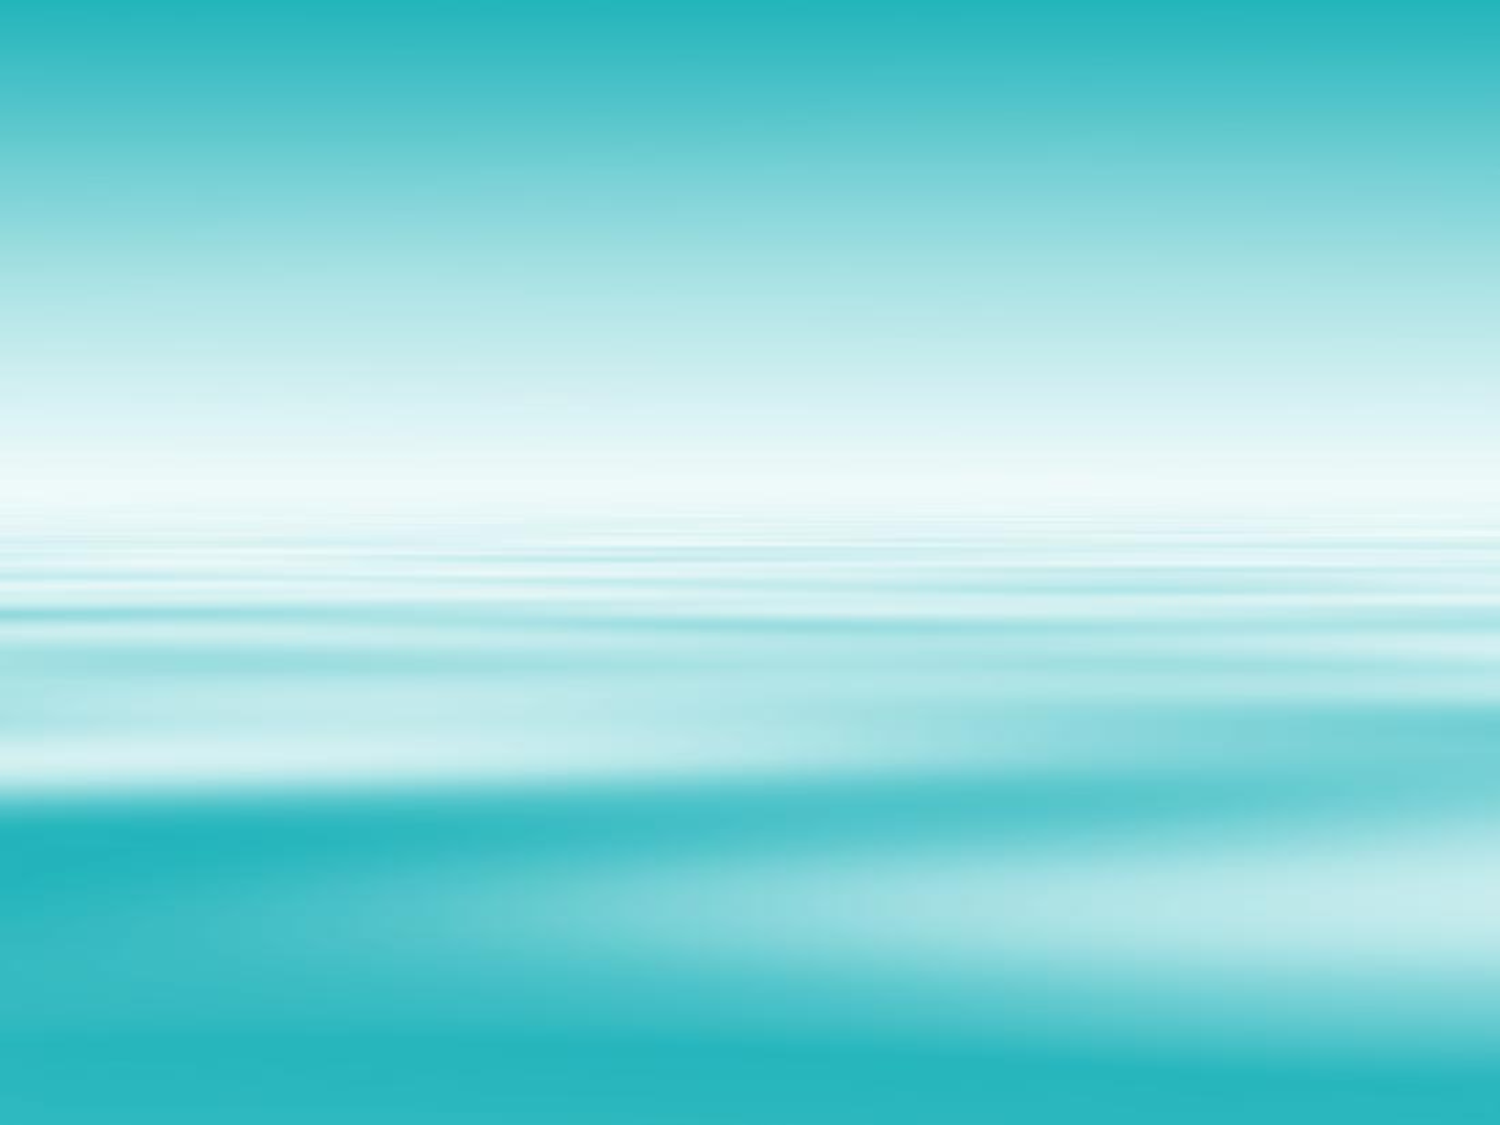 powerpoint backgrounds blue